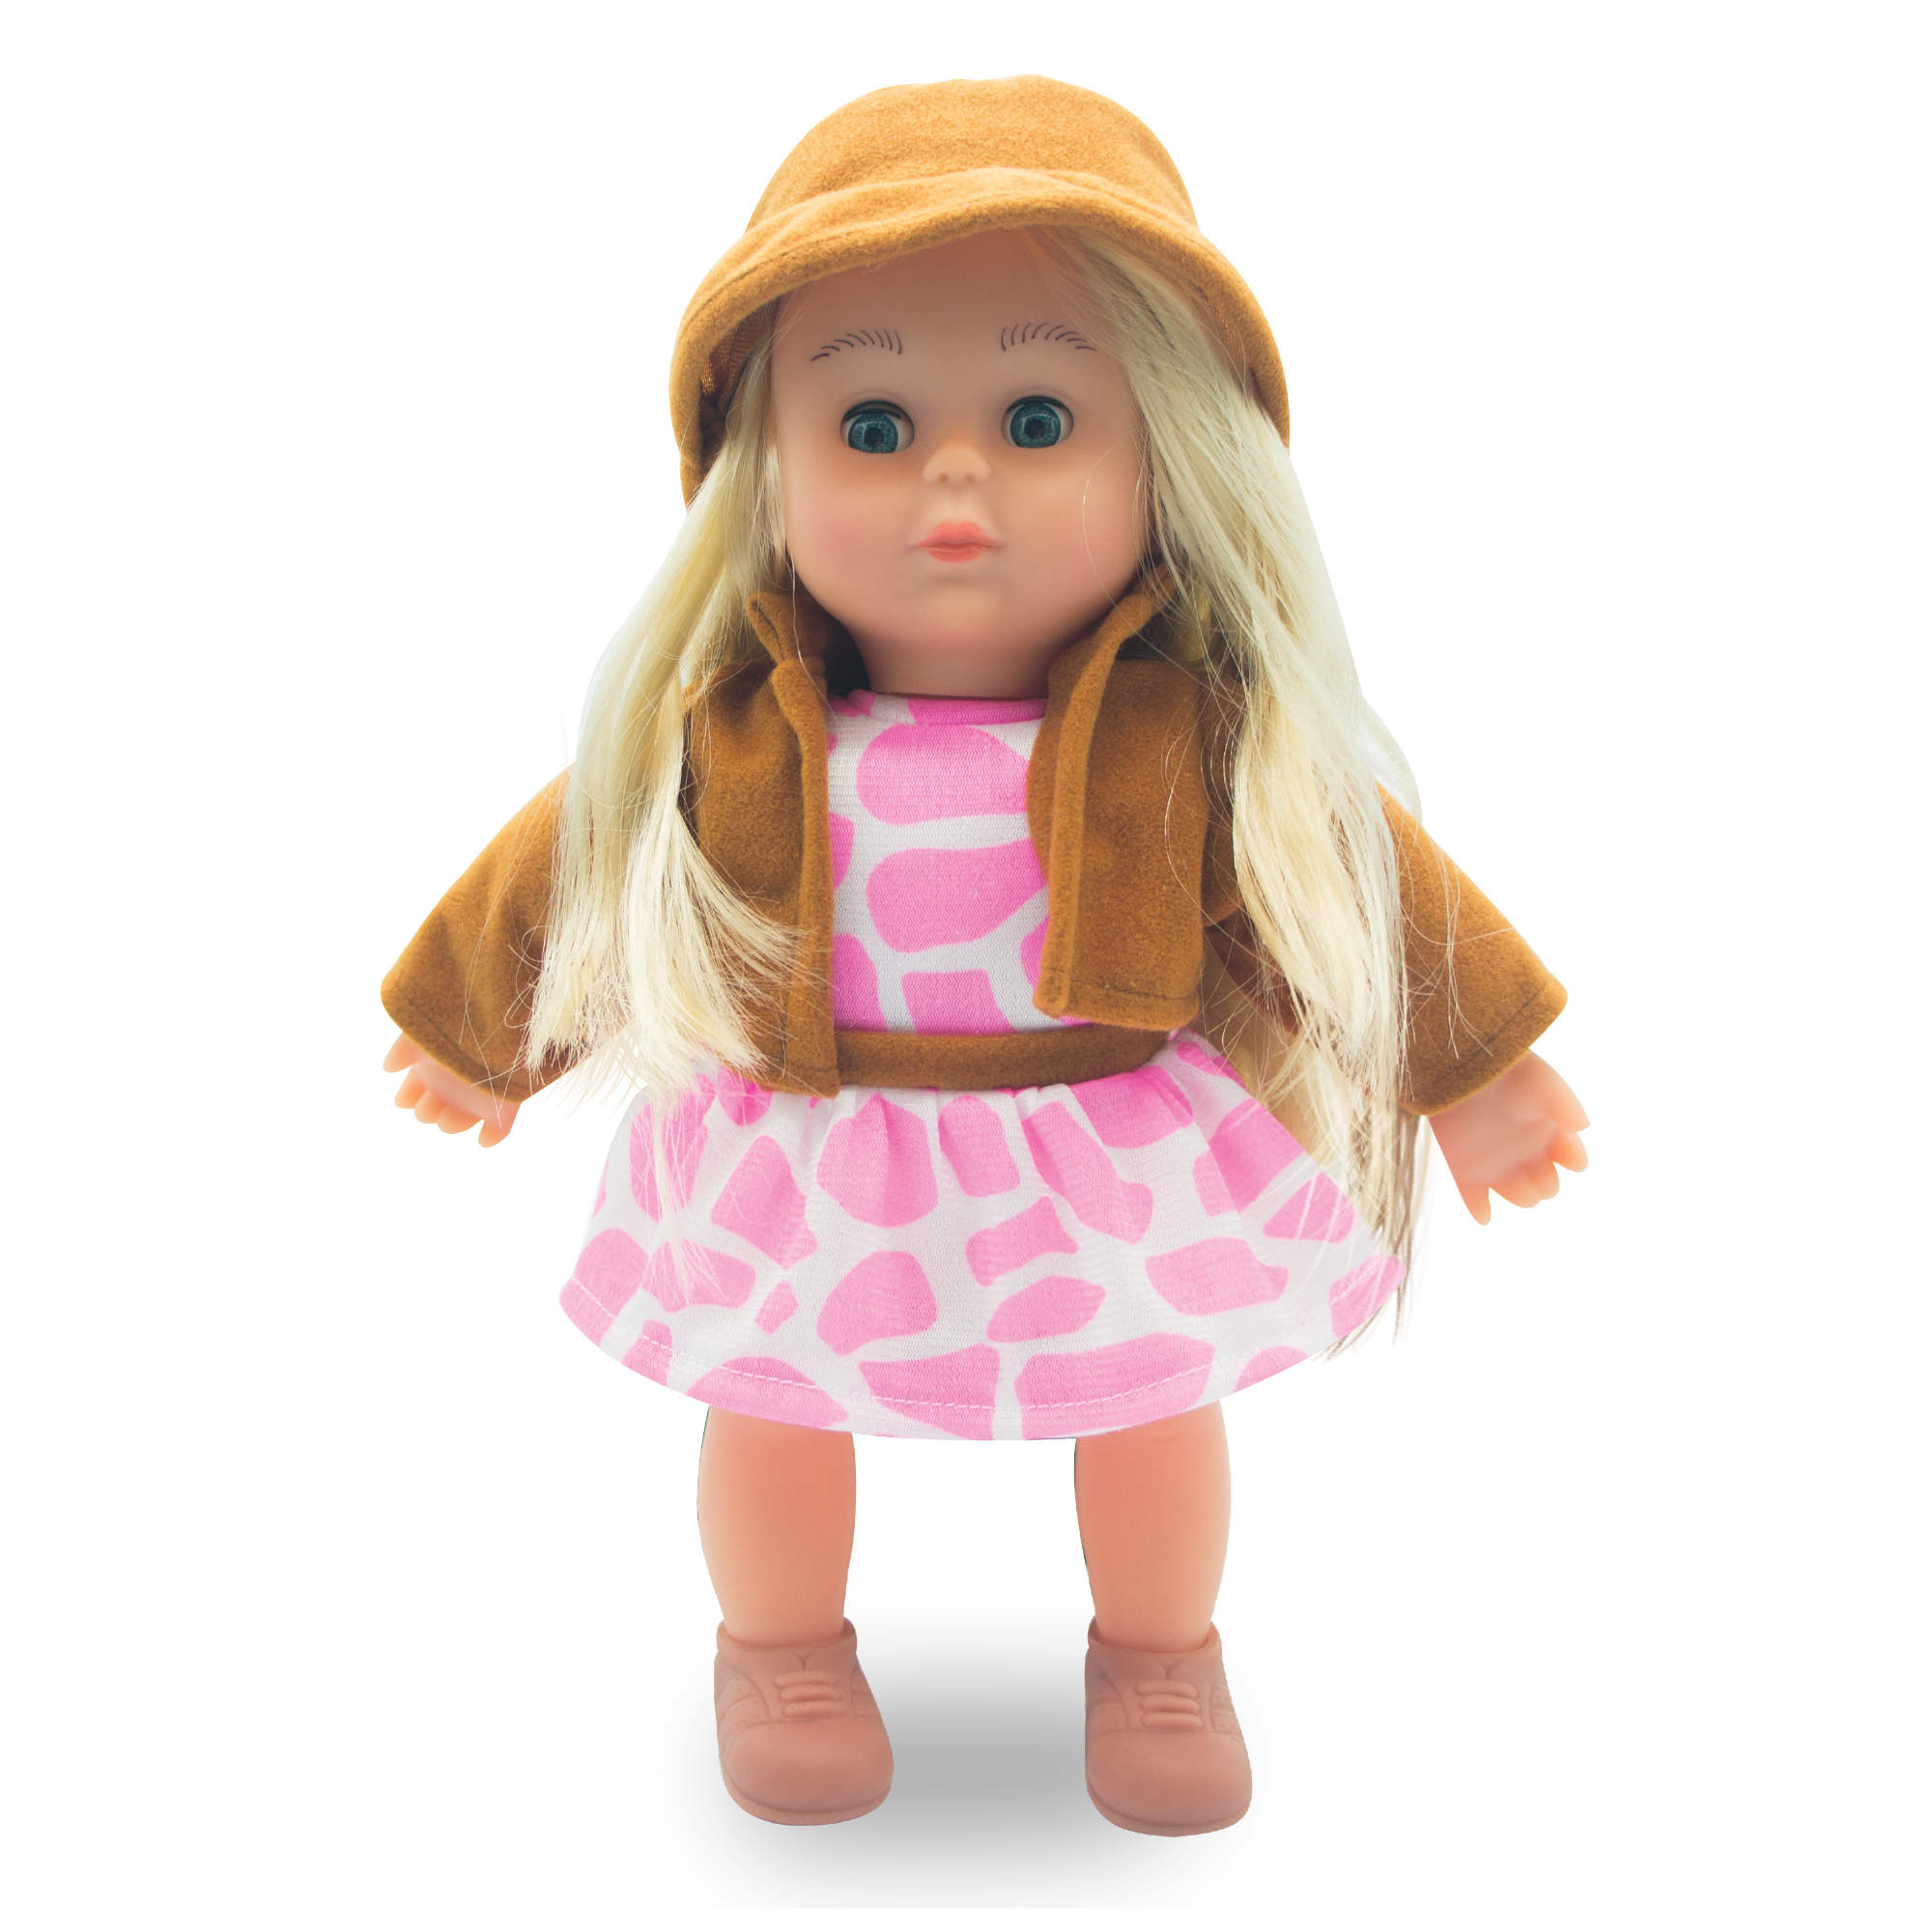 Just Kidz 12 Quot Cow Girl Singing Rock And Road Doll Toys